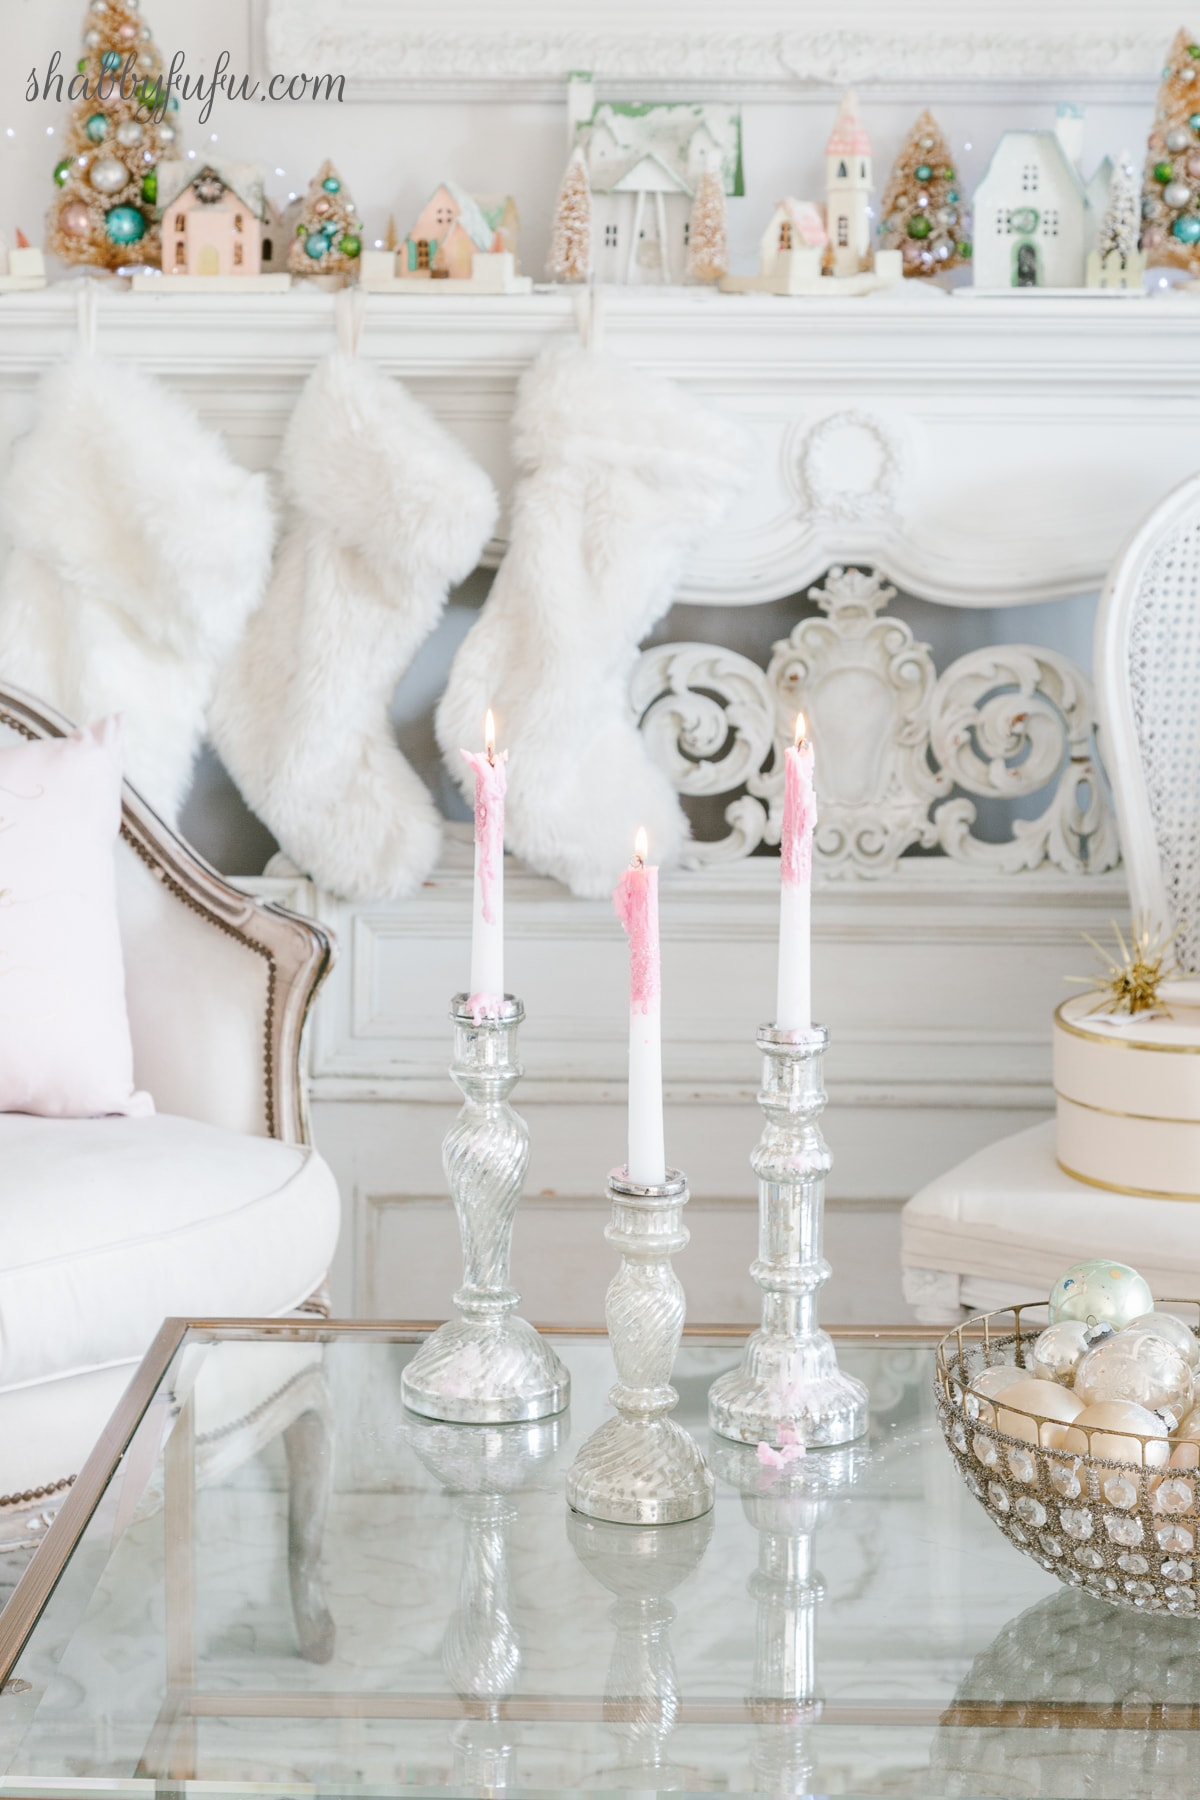 faux fur Christmas stockings on a French mantel